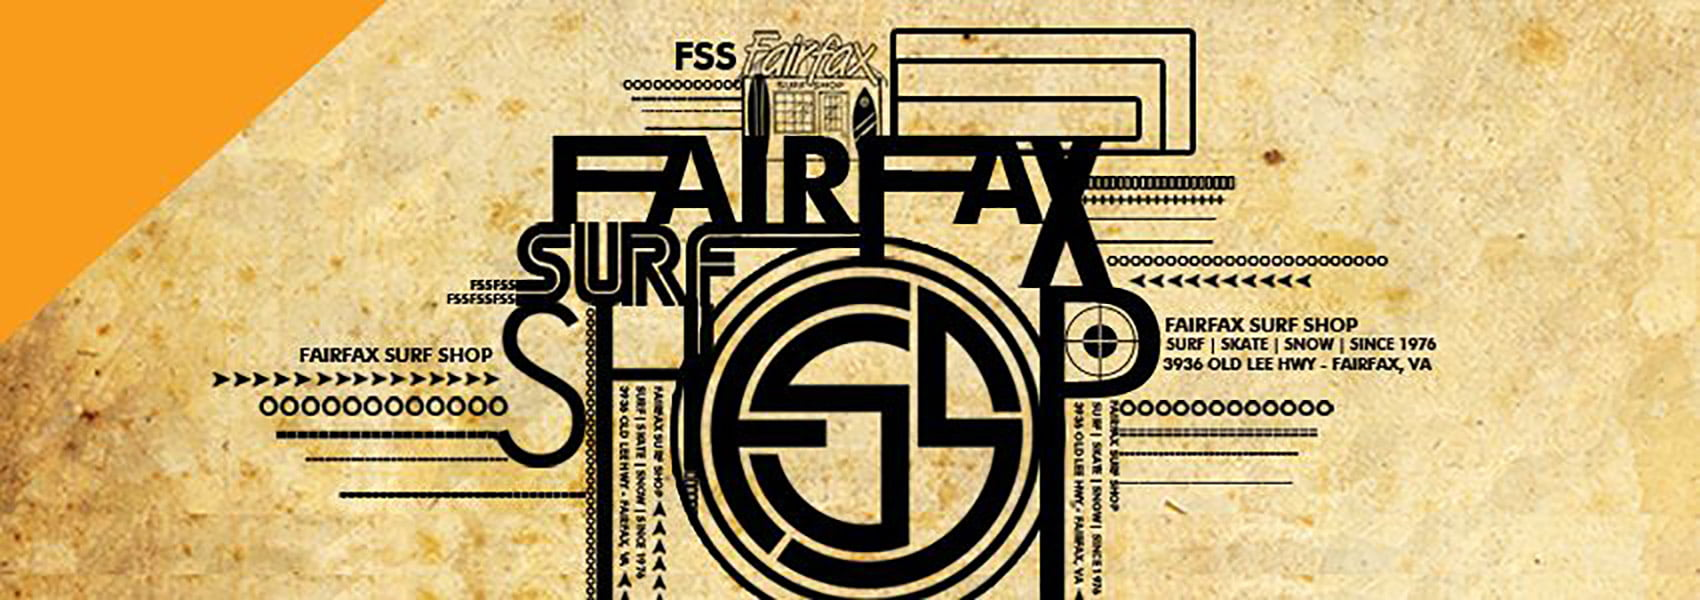 Fairfax Surf Shop